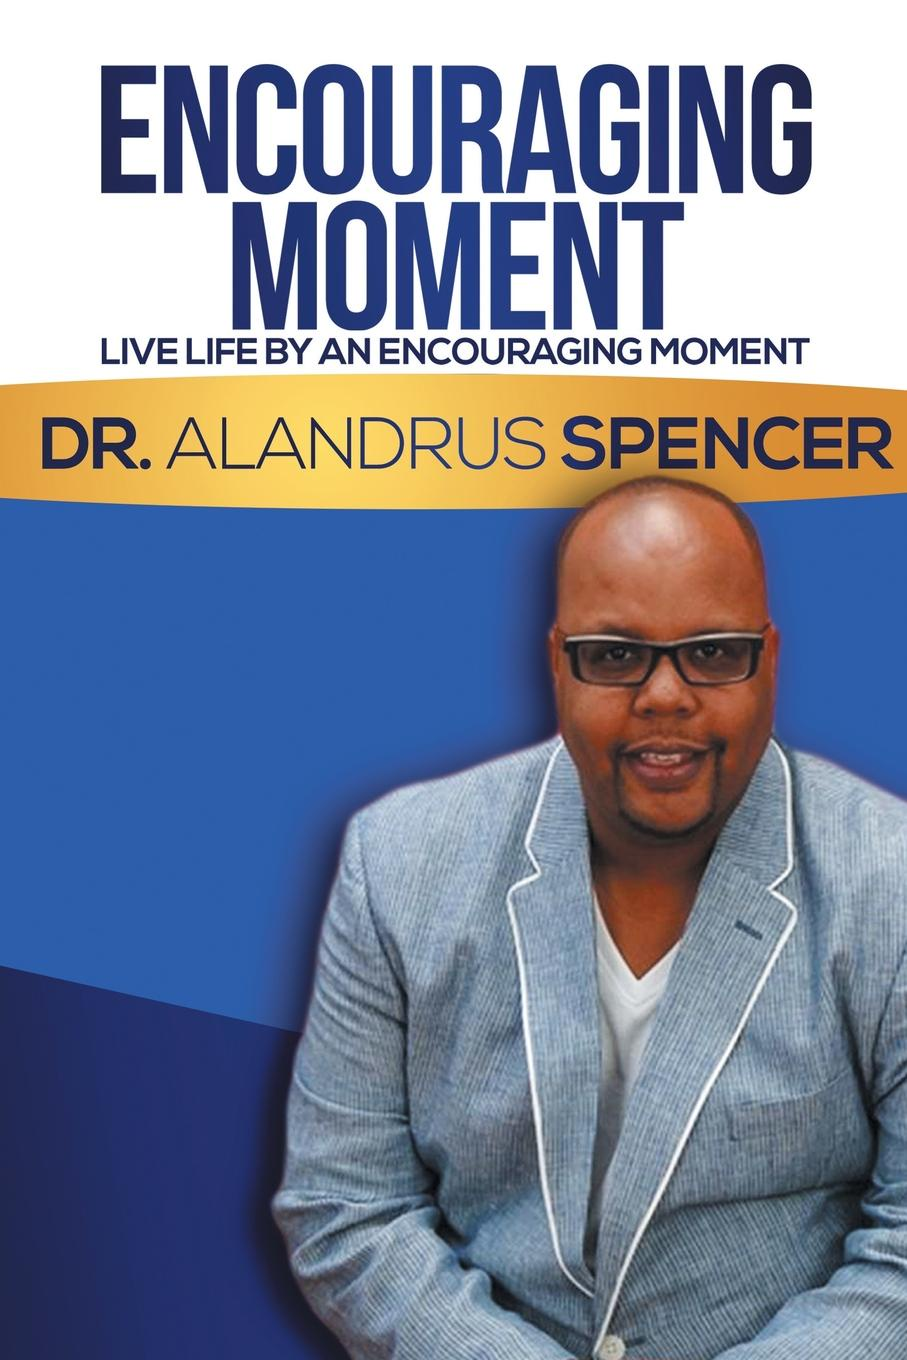 лучшая цена Dr. Alandrus Spencer Encouraging Moment. Live Life by an Encouraging Moment